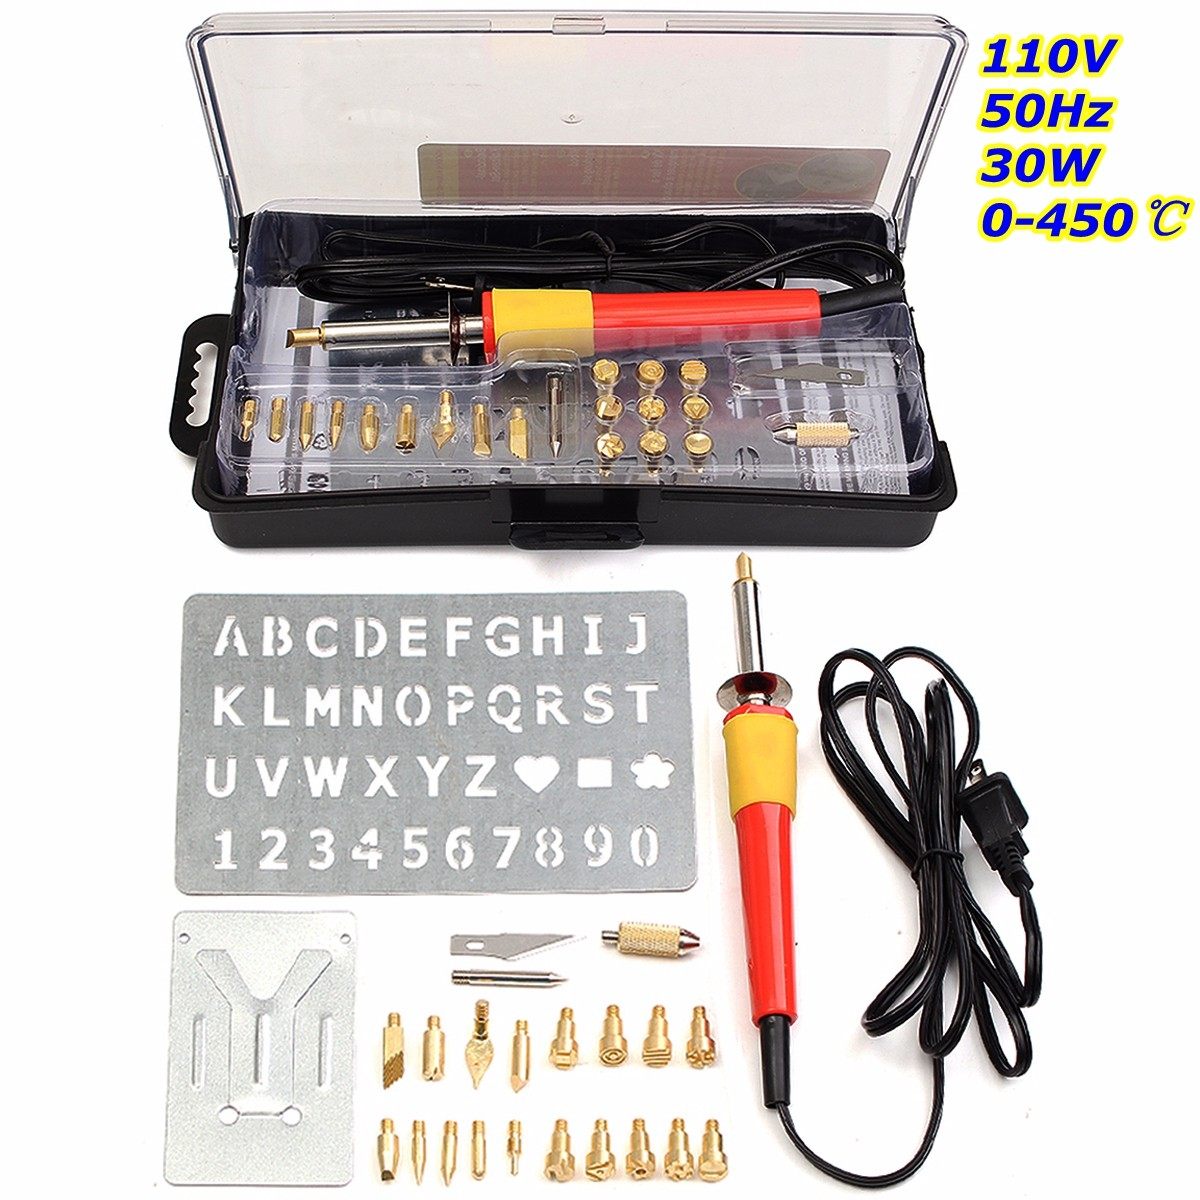 24PCS 110V 30W Wood Burning PYROGRAPHY SET Pen Tips Art Crafts Tools Kit ALPHABET NUMBERS Soldering Tips Tweezer Tool